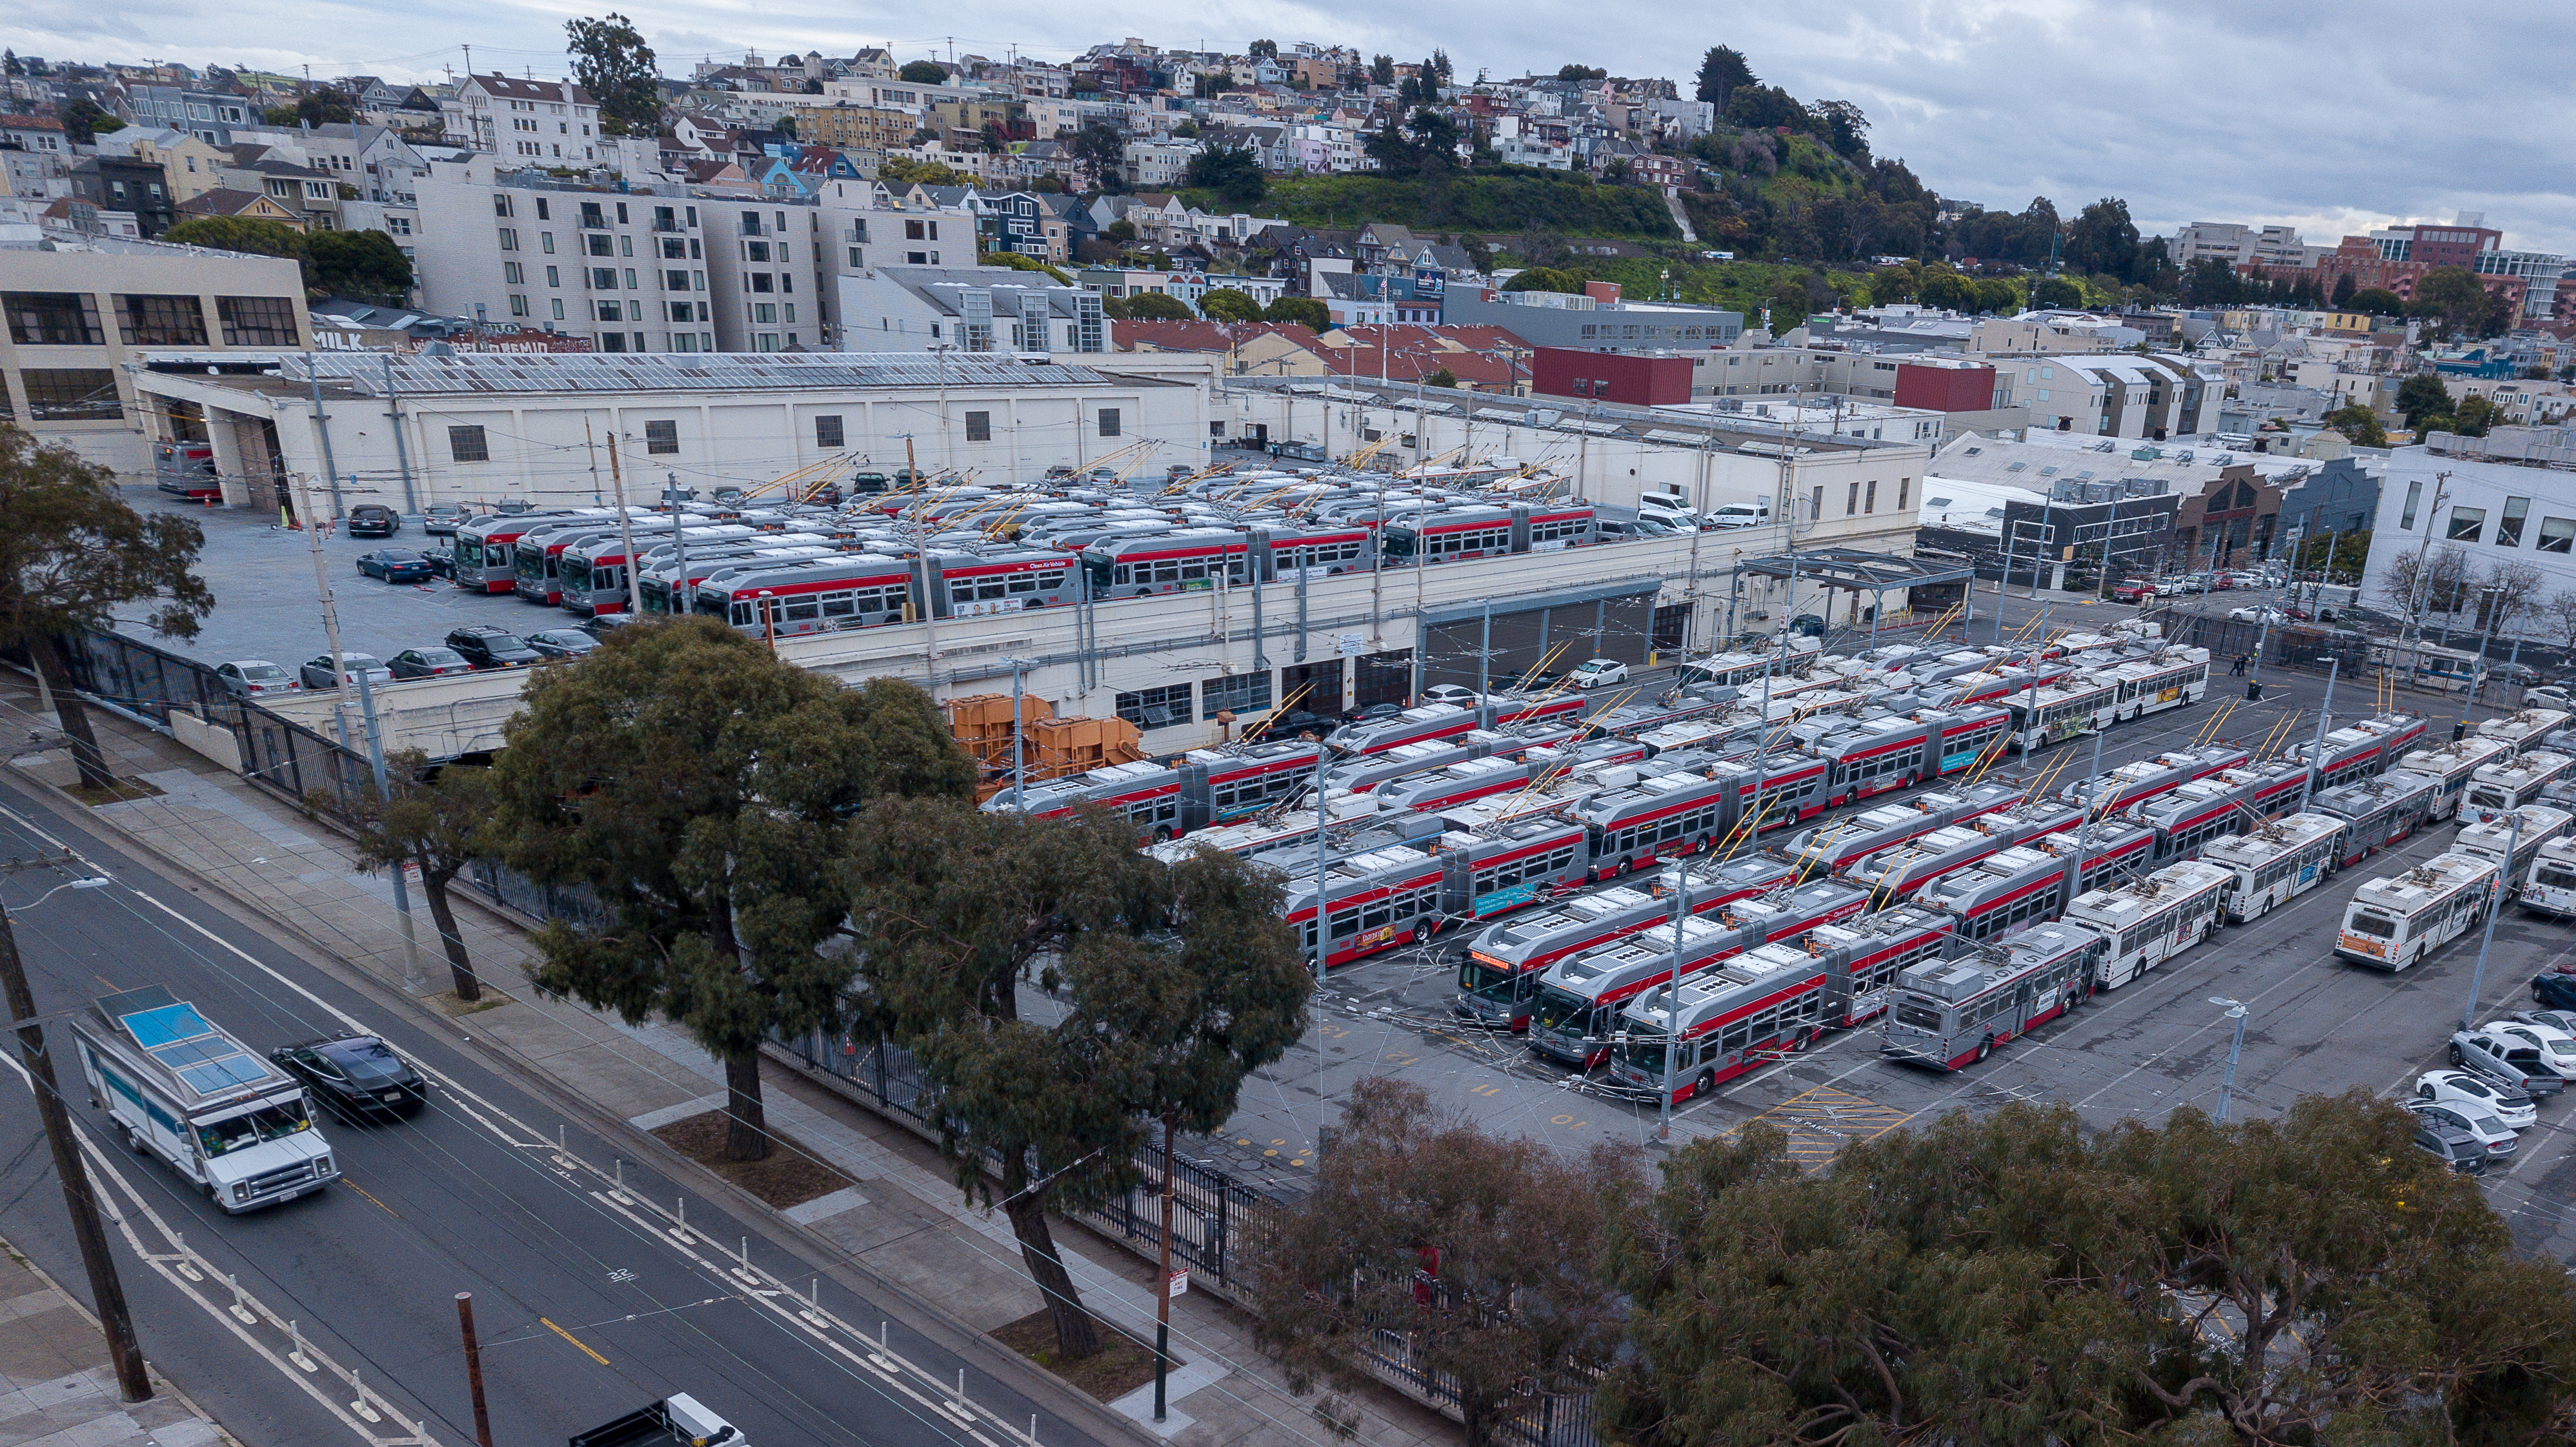 A big parking lot full of commuter buses.